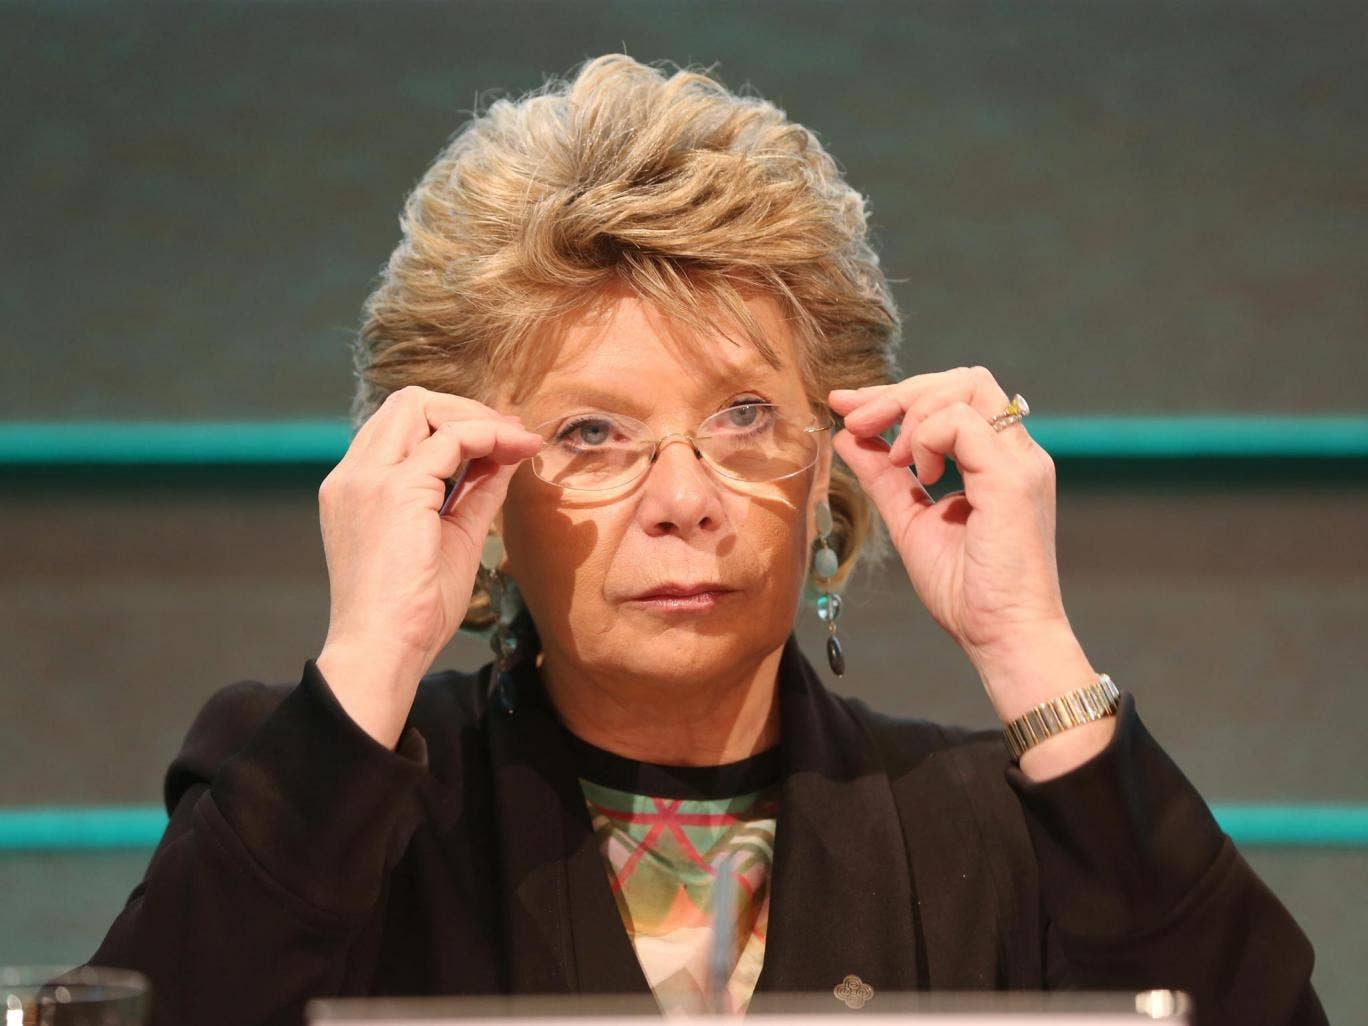 European Commission vice-president Viviane Reding says that Britain needs to focus on education and welfare